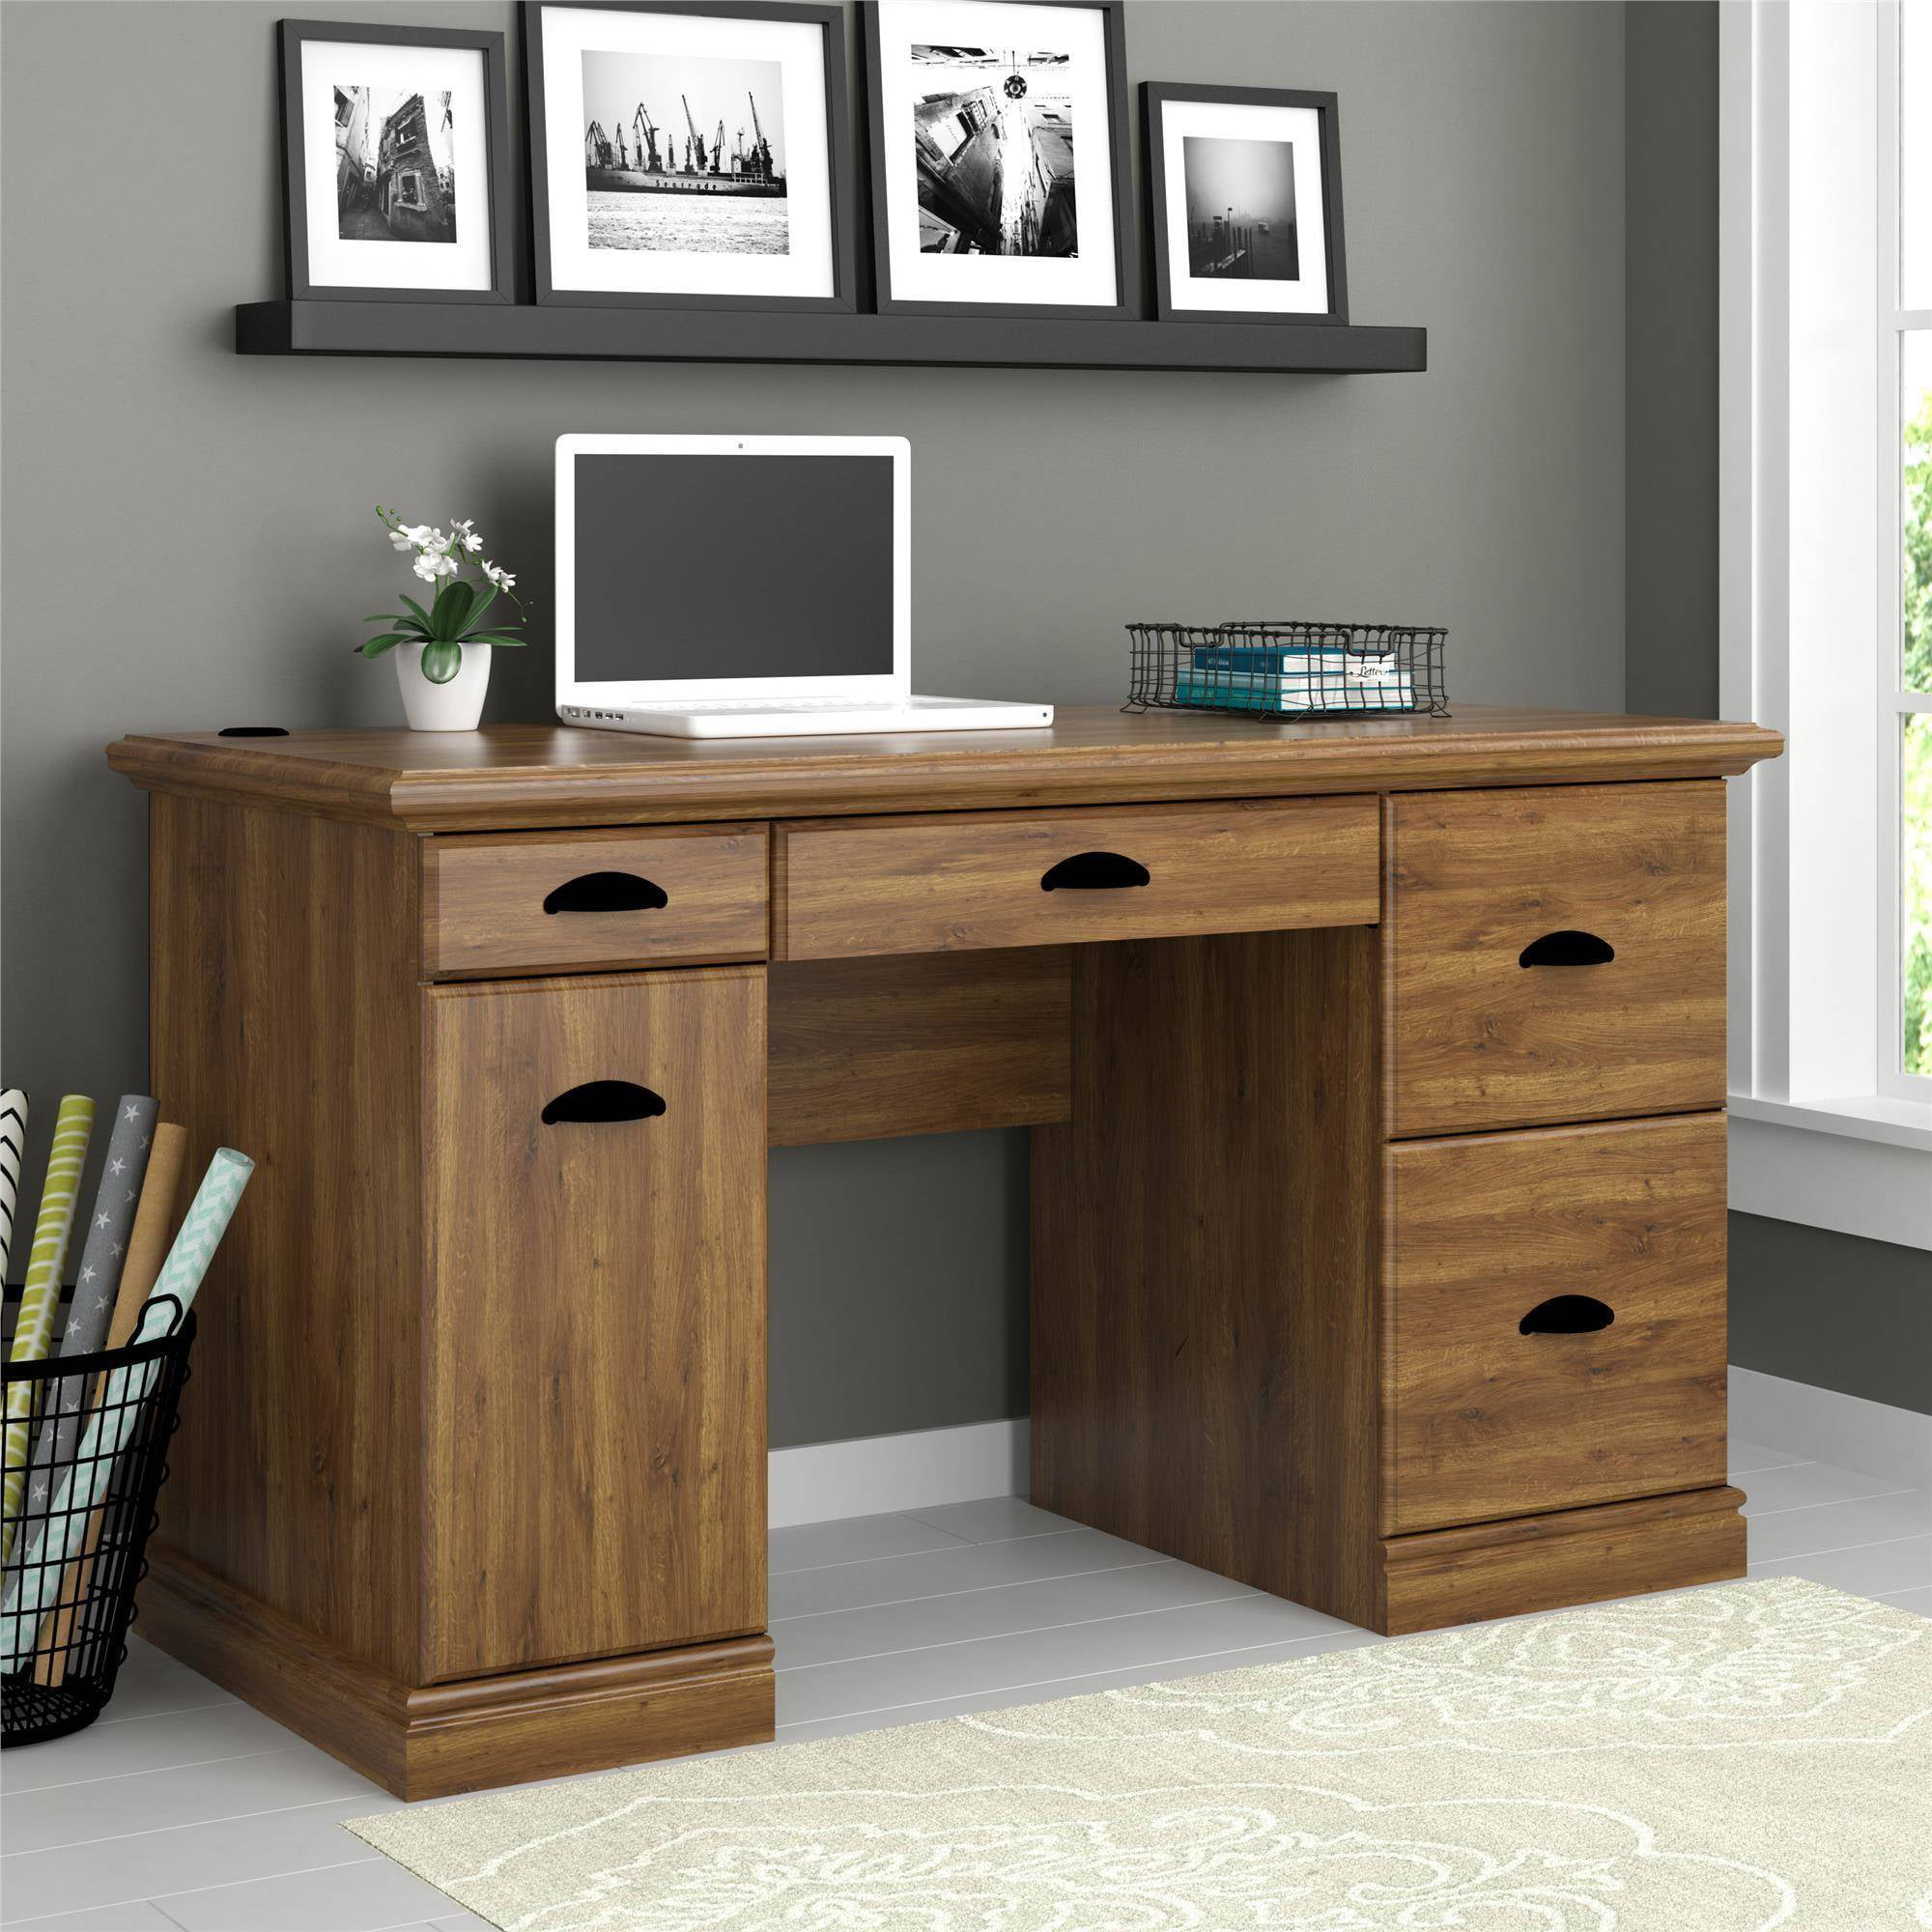 Desks For Teenage Rooms Simple Teens' Room  Every Day Low Prices  Walmart Inspiration